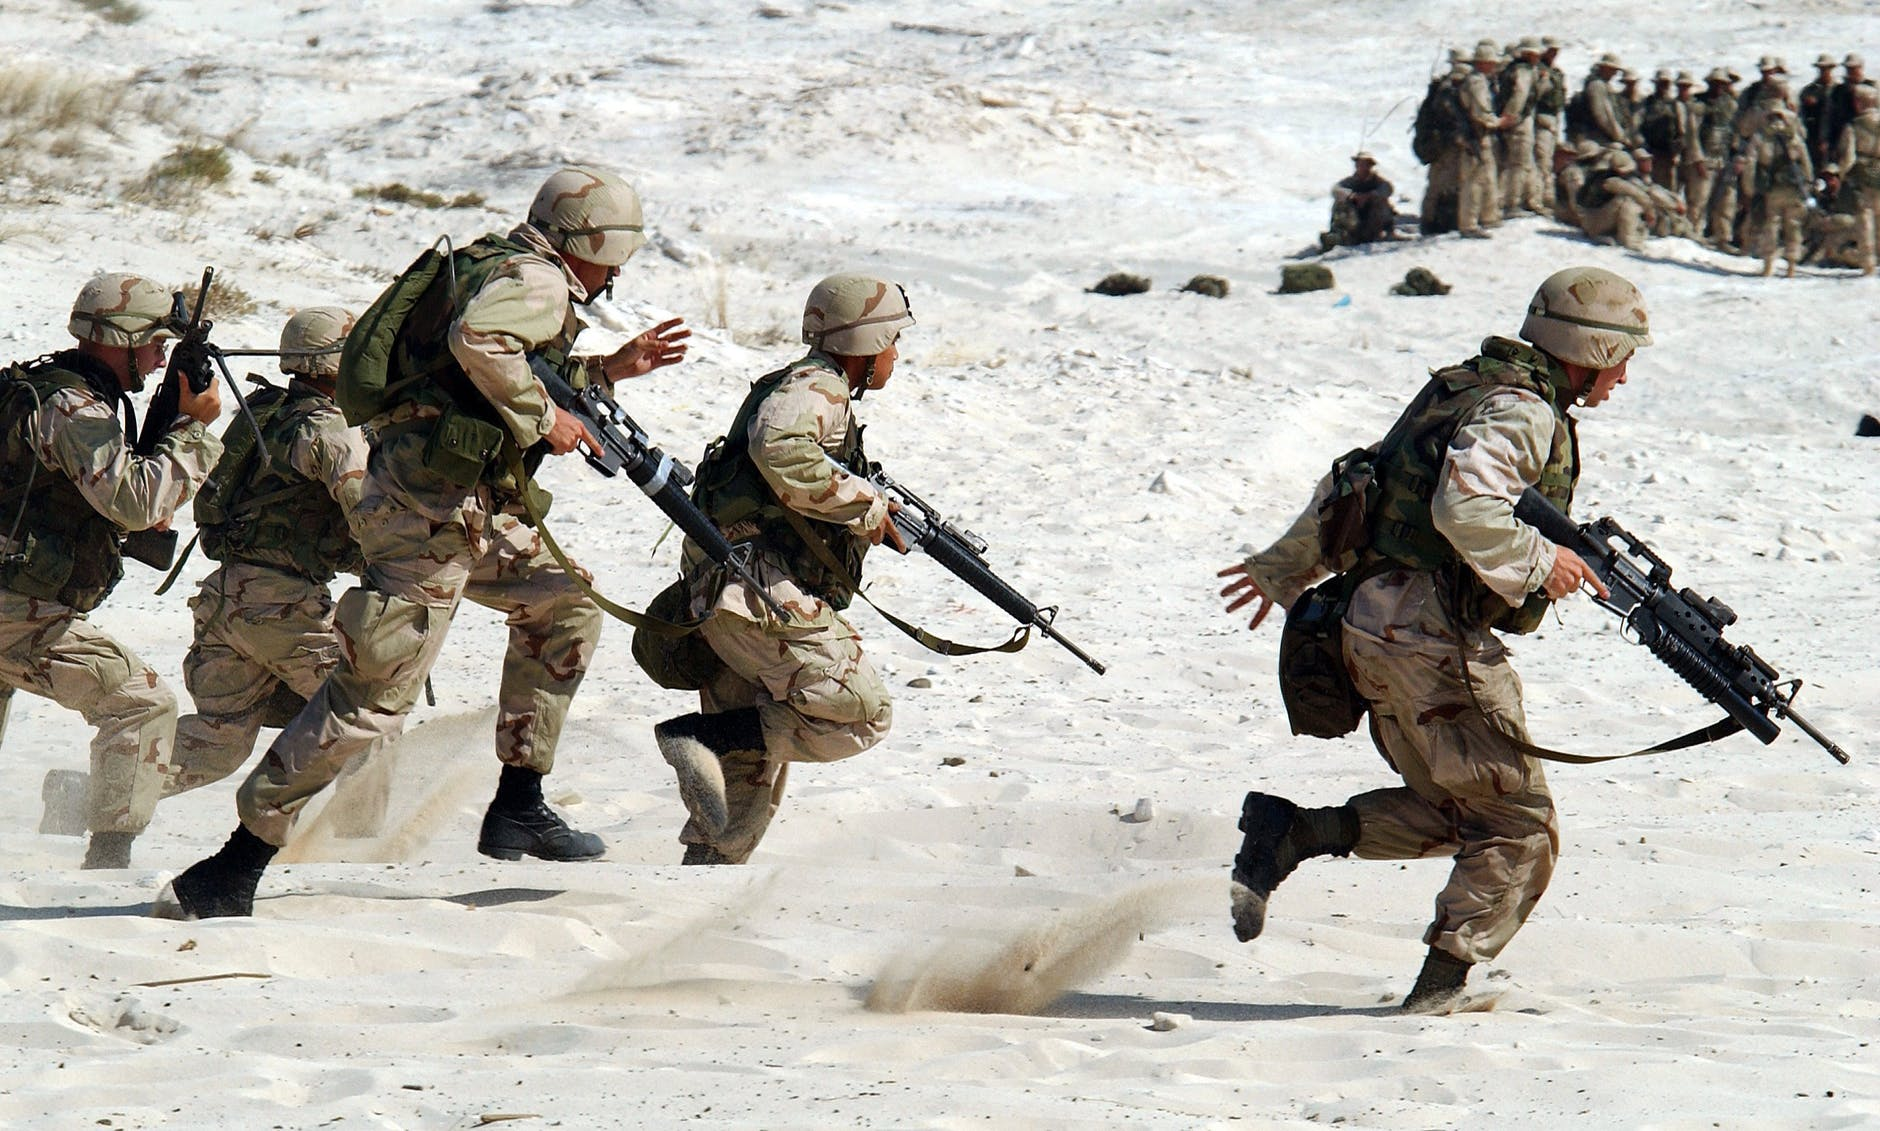 Action shot of five American soldiers running across a desert landscape